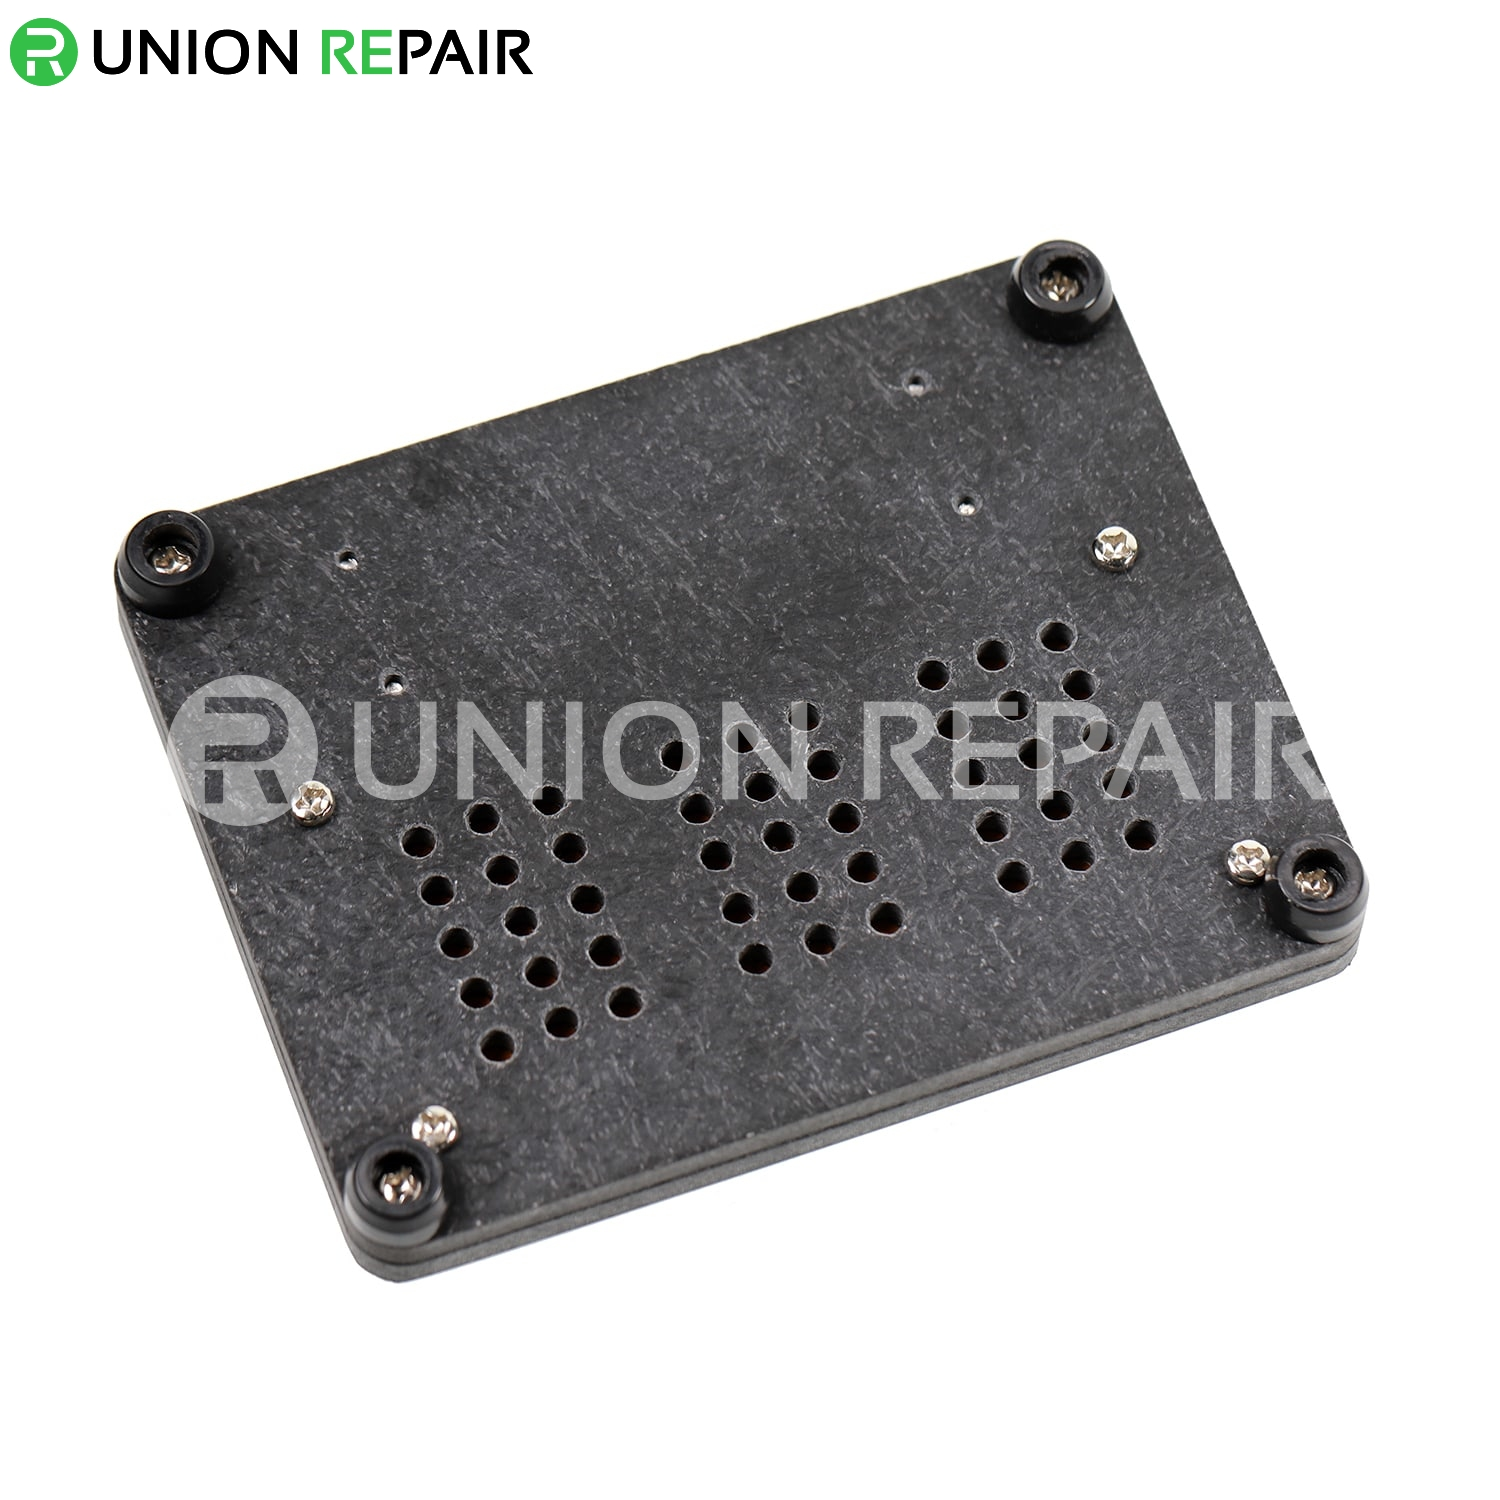 X6 6in1 Mainboard Layered Heating Platform for iPhone X/XS/XSMAX/11/11PRO/11PROMAX